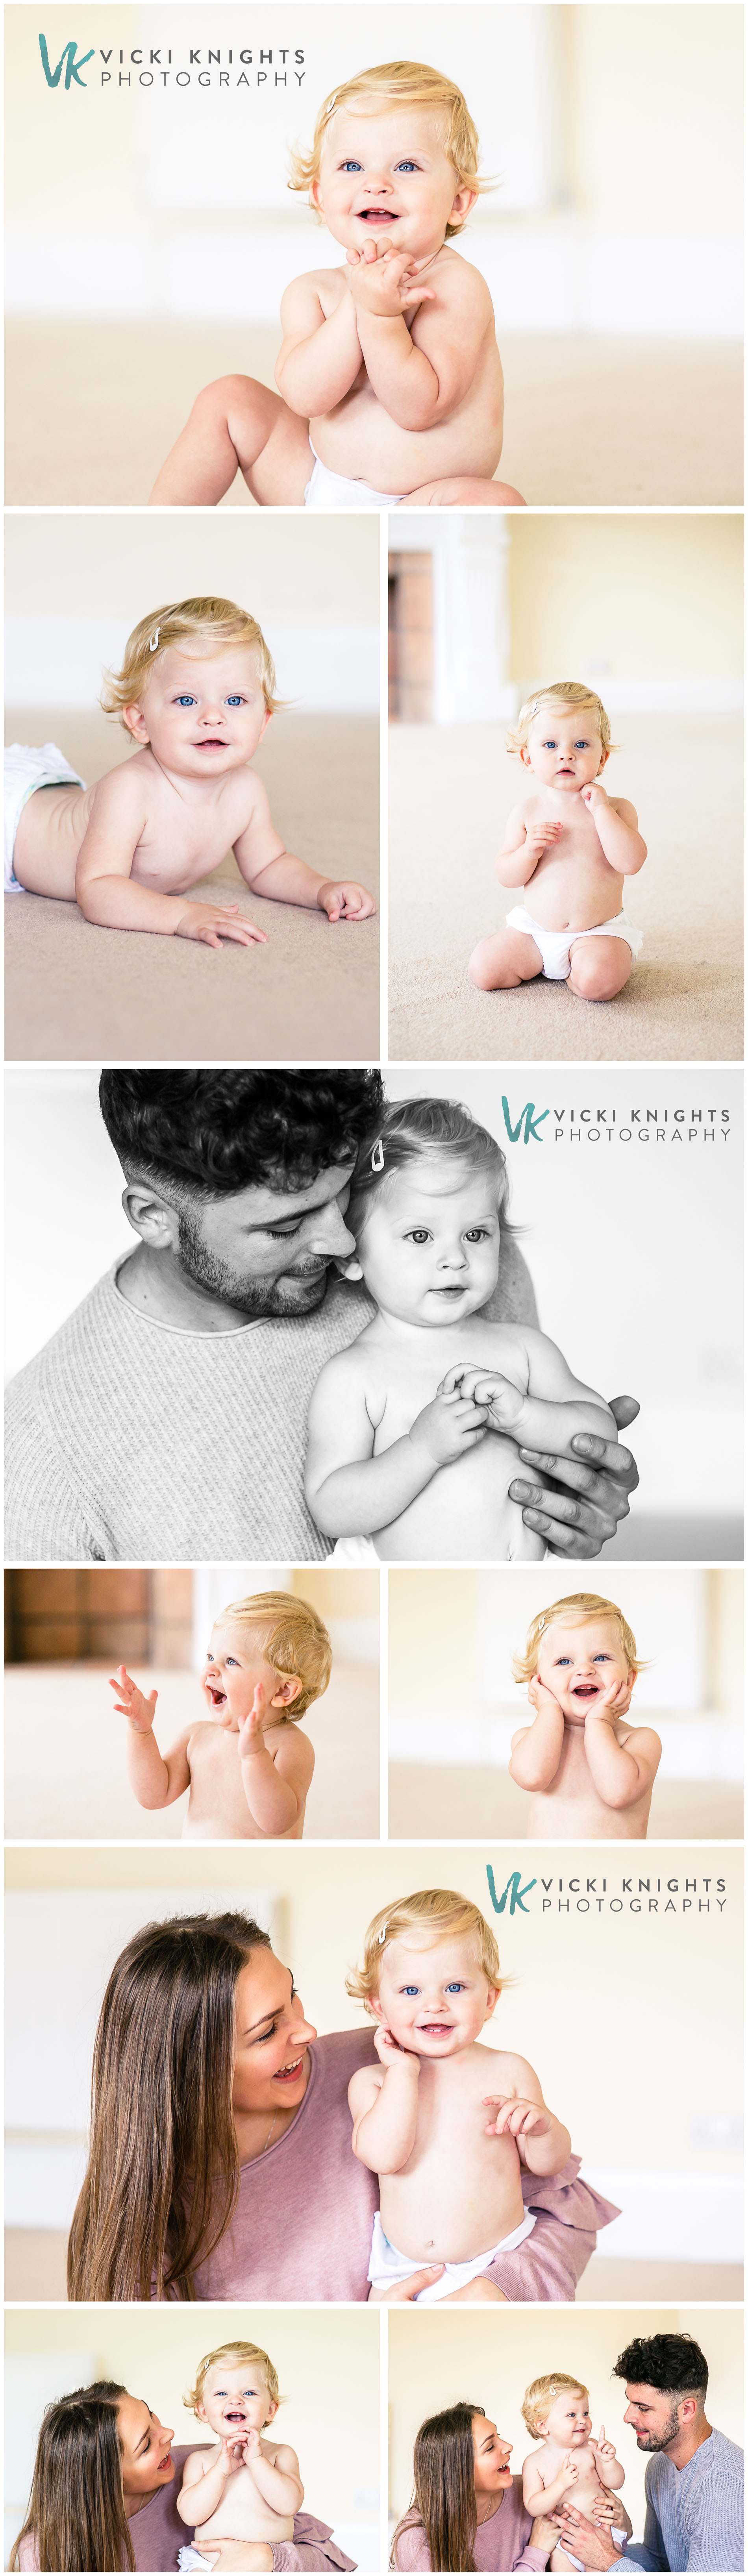 workshop-baby-lifestyle-photography-1